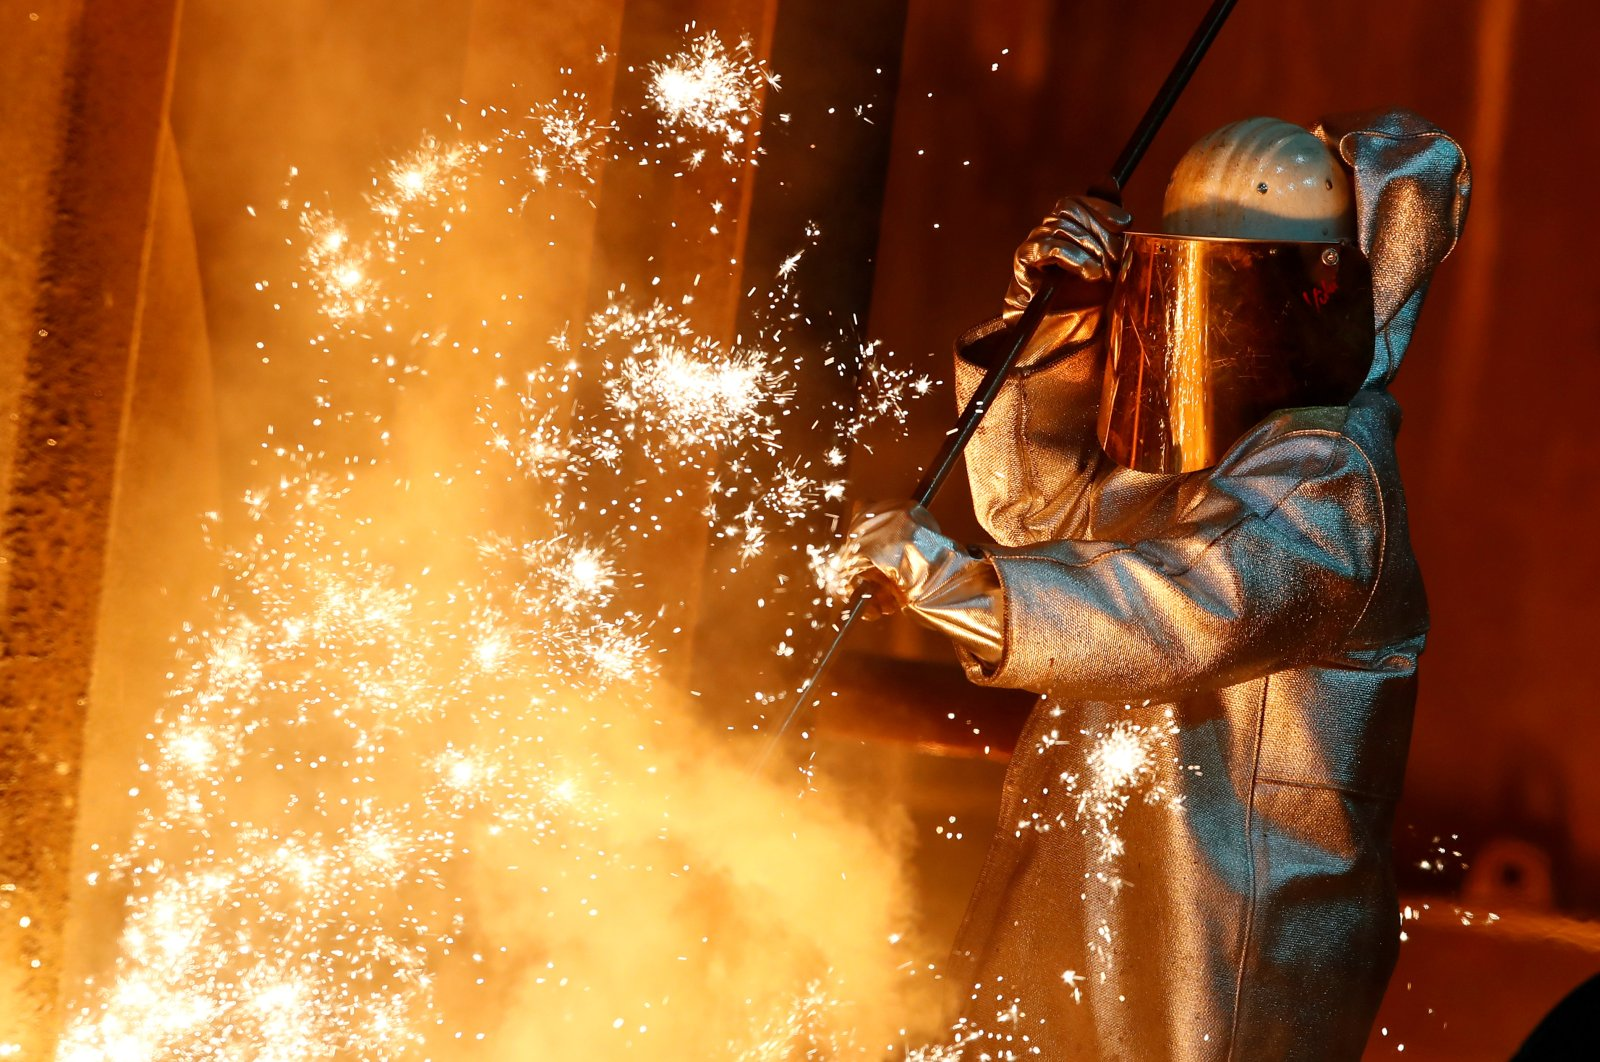 A steel worker of ThyssenKrupp stands amid sparks of raw iron coming from a blast furnace at a ThyssenKrupp steel factory in Duisburg, western Germany, Jan. 30, 2020. (Reuters Photo)